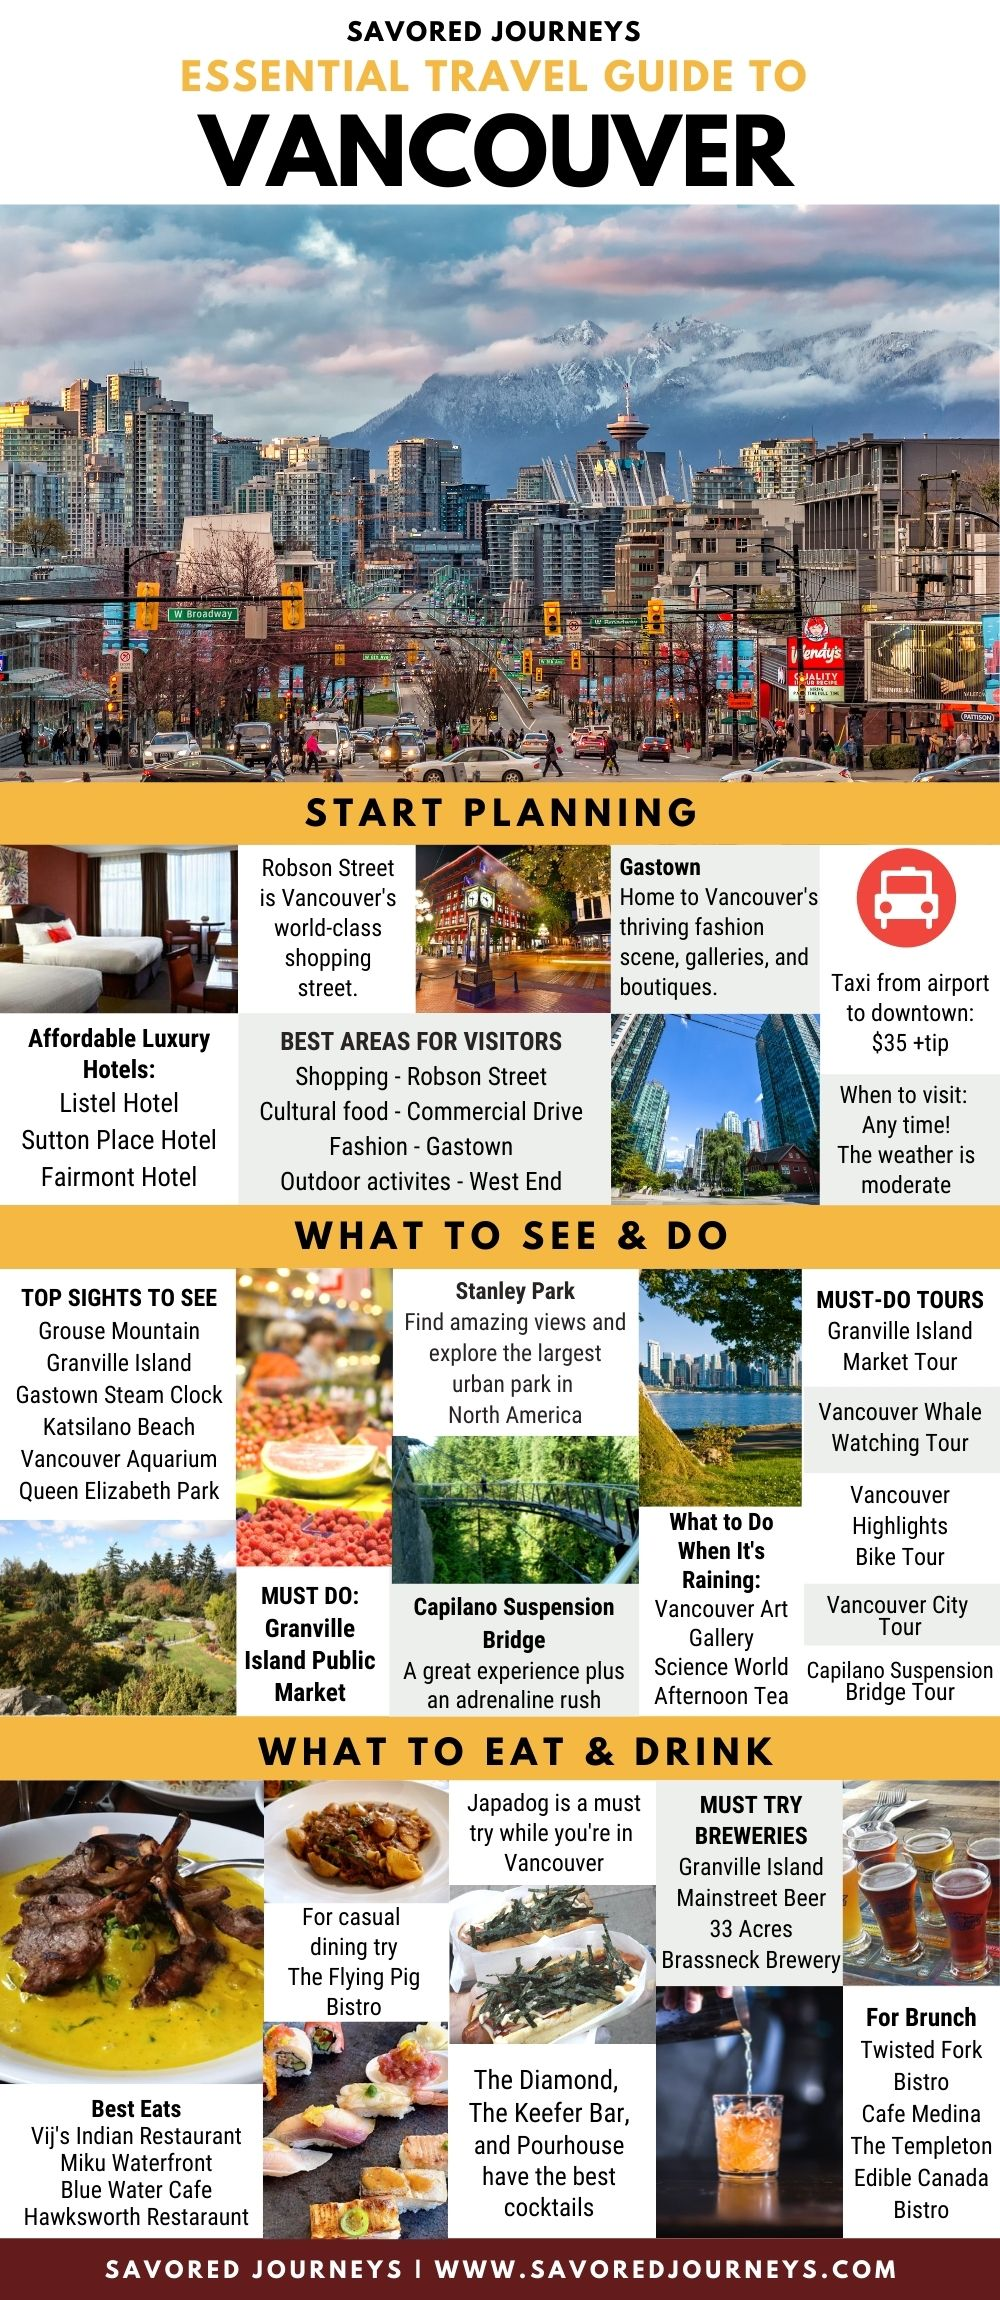 Vancouver Essential Travel Guide